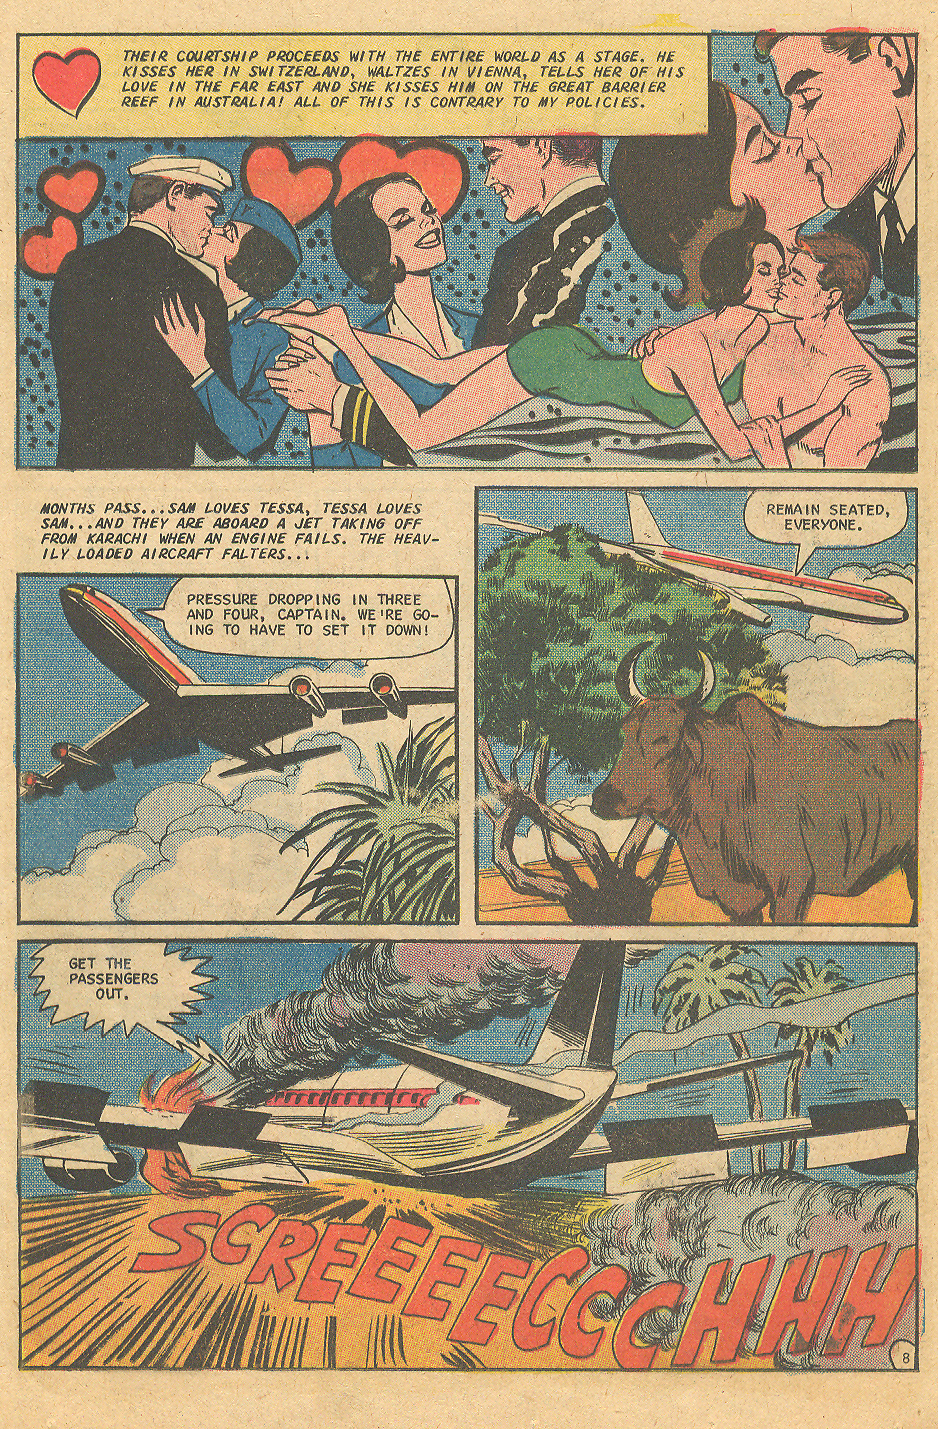 Stewardess Pan Am vintage comic book romance